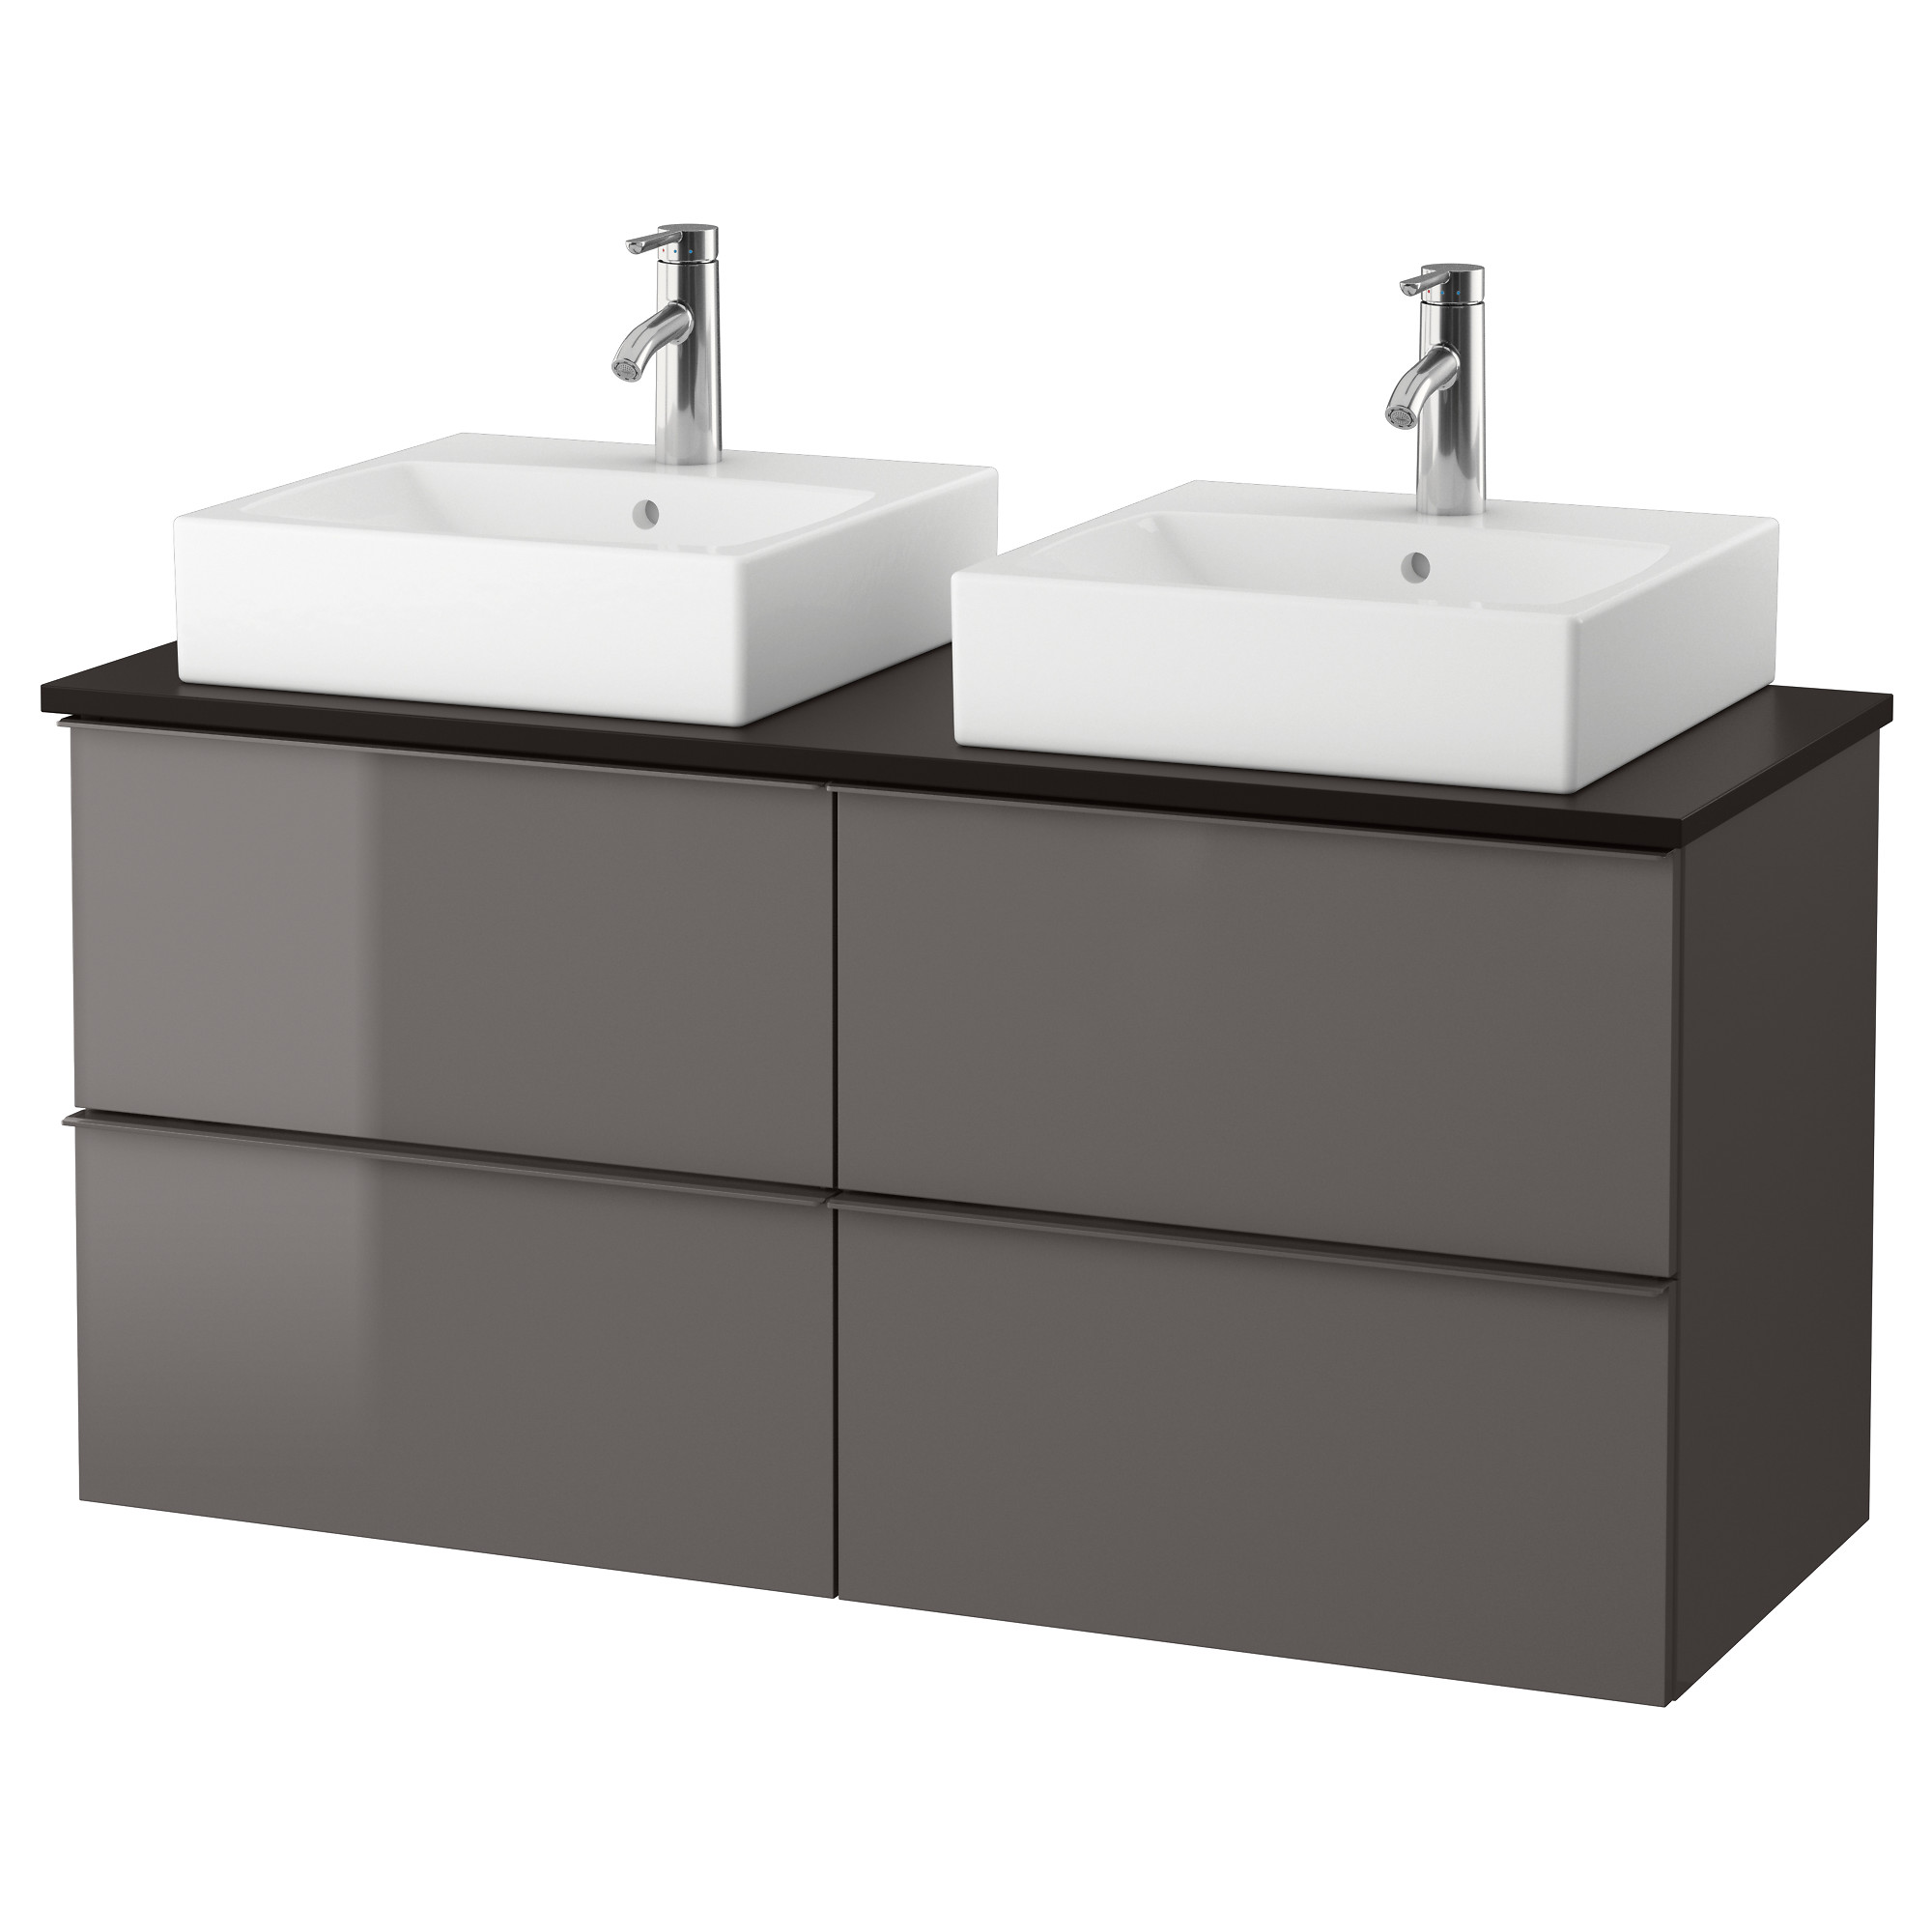 godmorgon tolken trnviken vanity countertop and 17 34 sink - White Bathroom Cabinets And Vanities